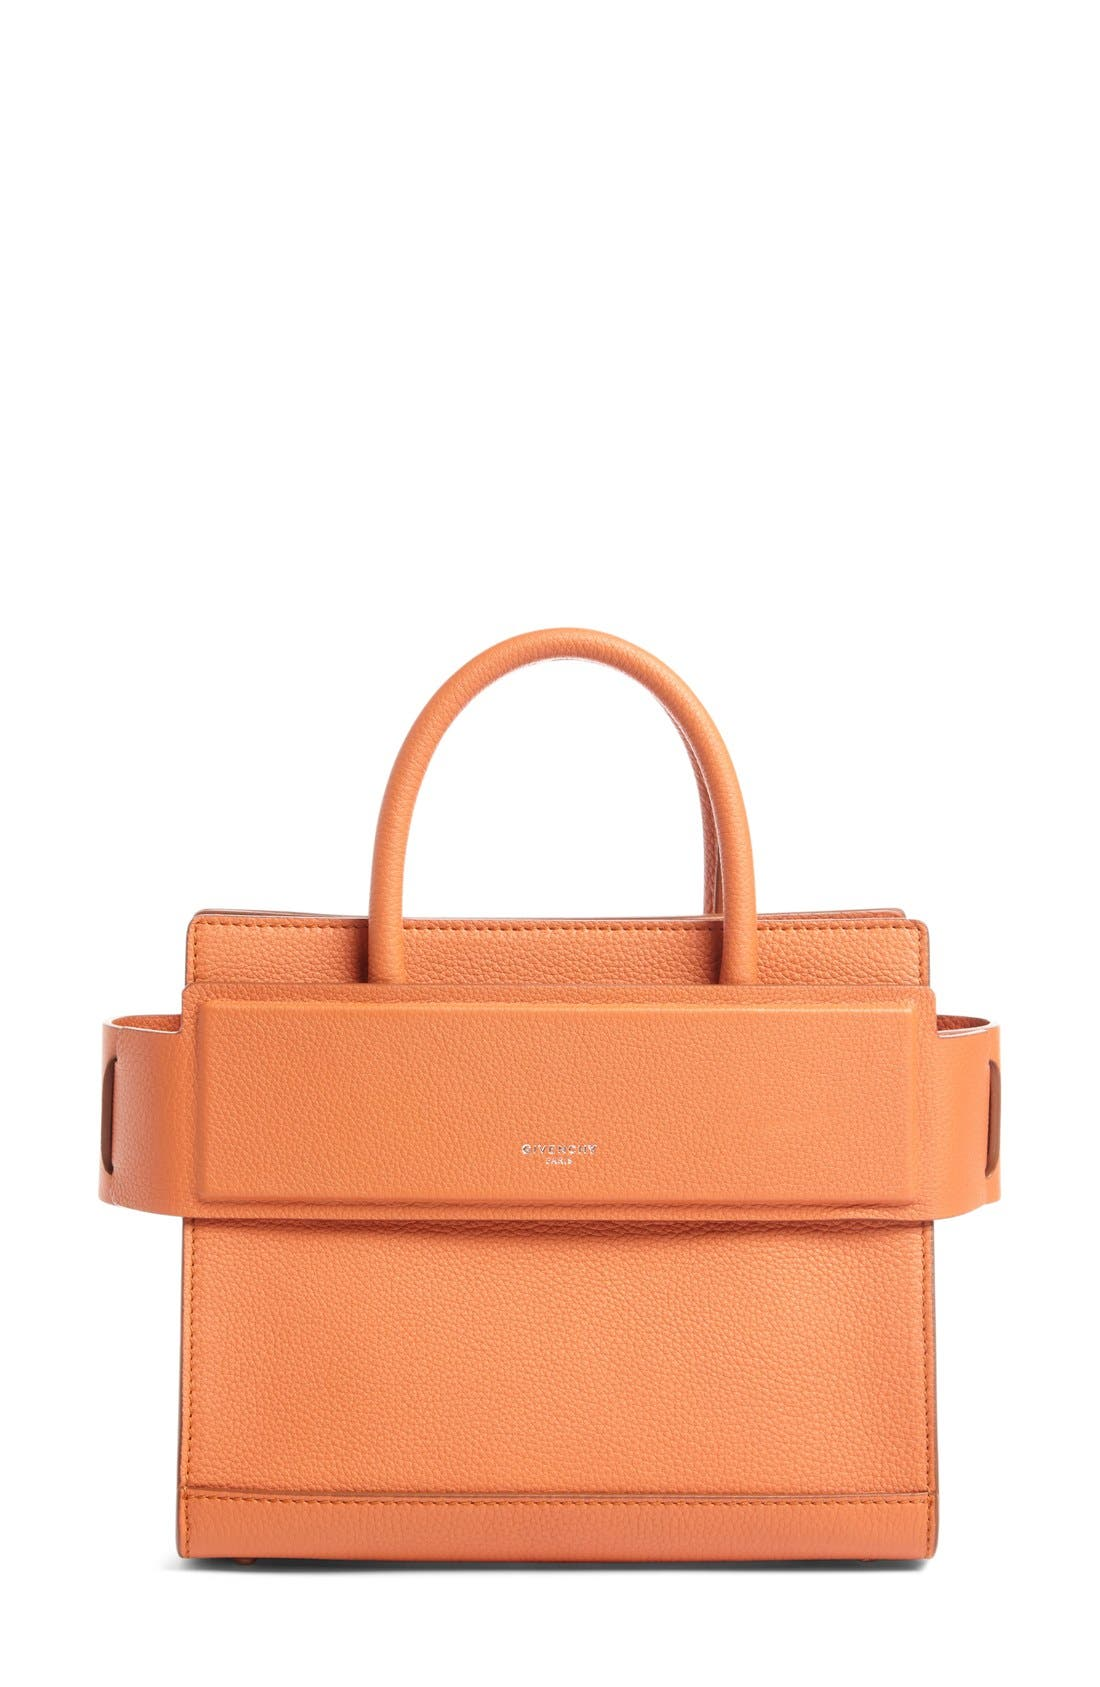 Main Image - Givenchy Mini Horizon Grained Calfskin Leather Tote